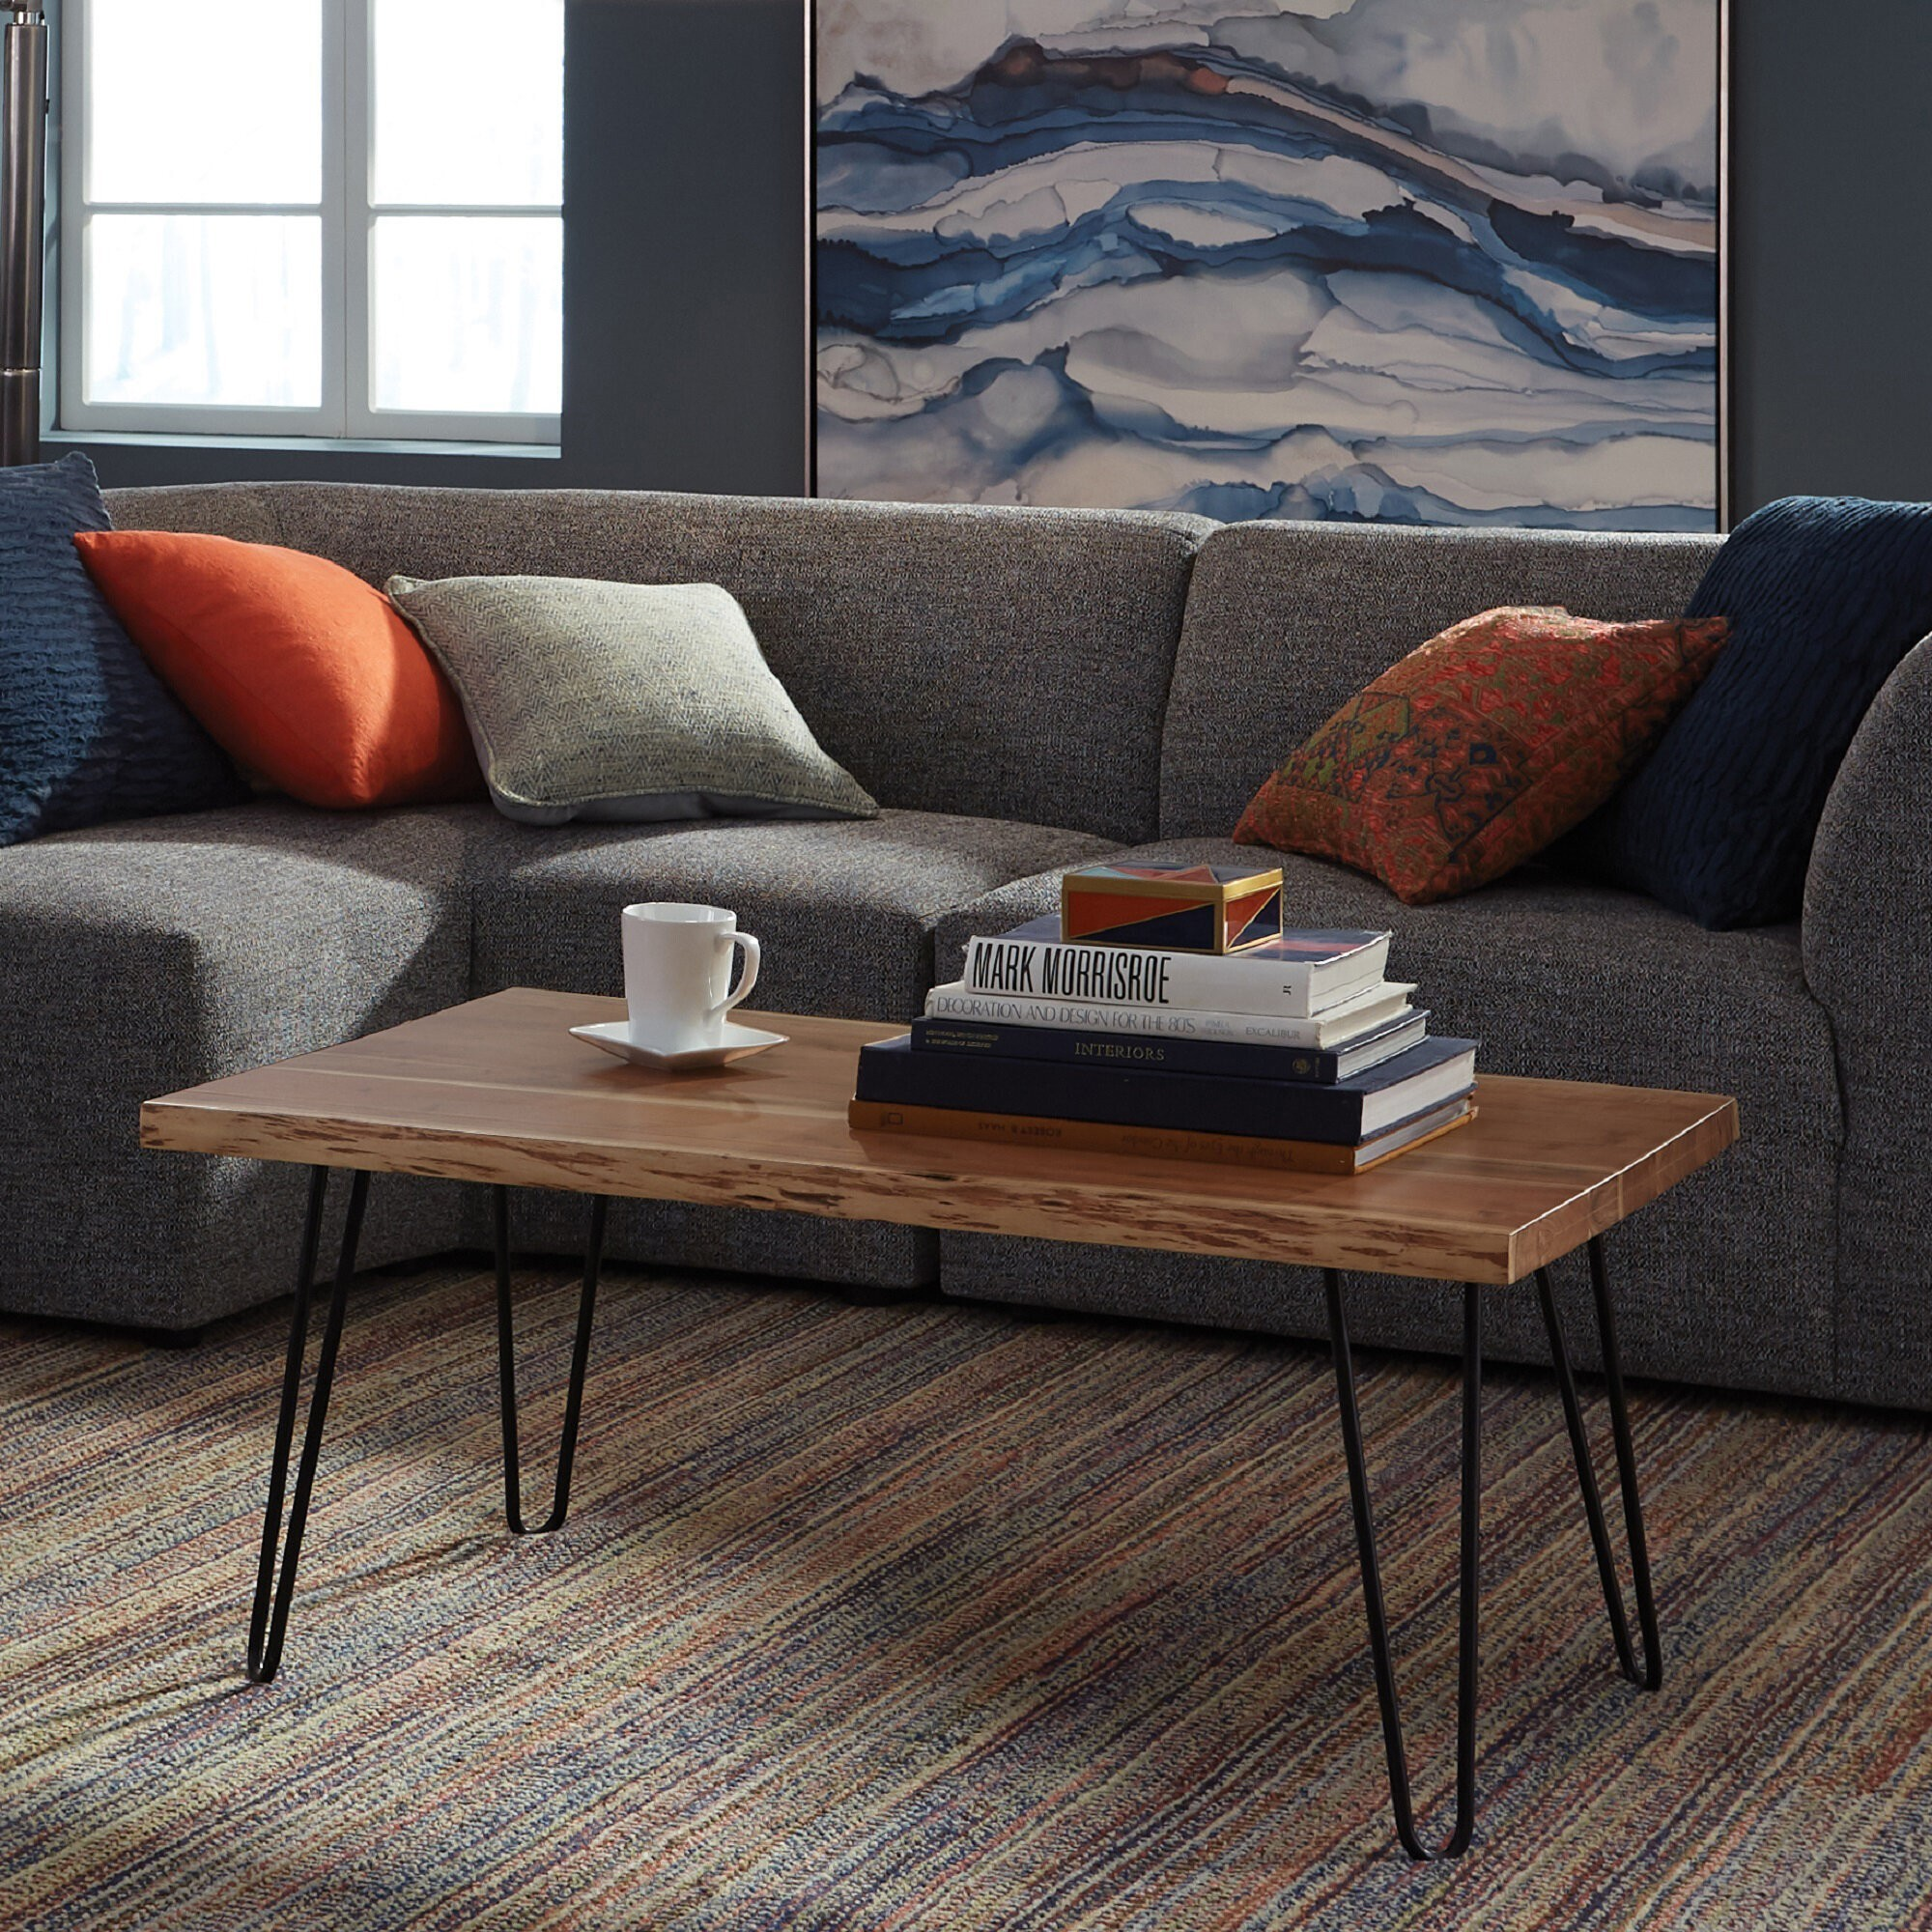 How To Choose A Coffee Table